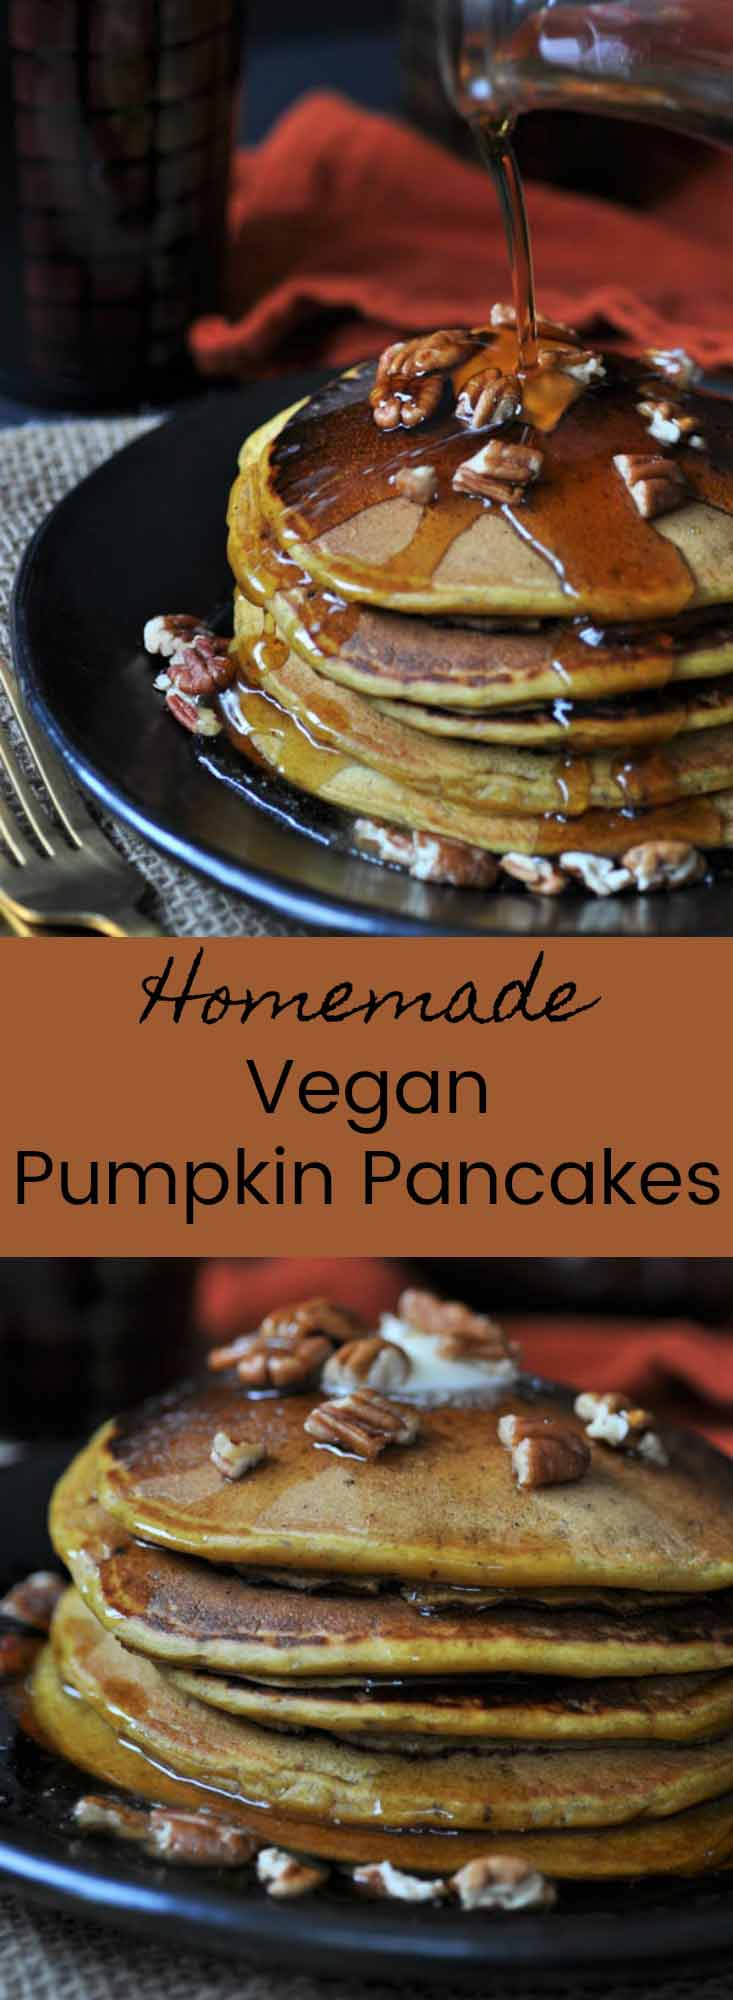 Vegan Pumpkin Pancakes! The perfect fall breakfast. Sprinkle with pecans and serve for your holiday meal.